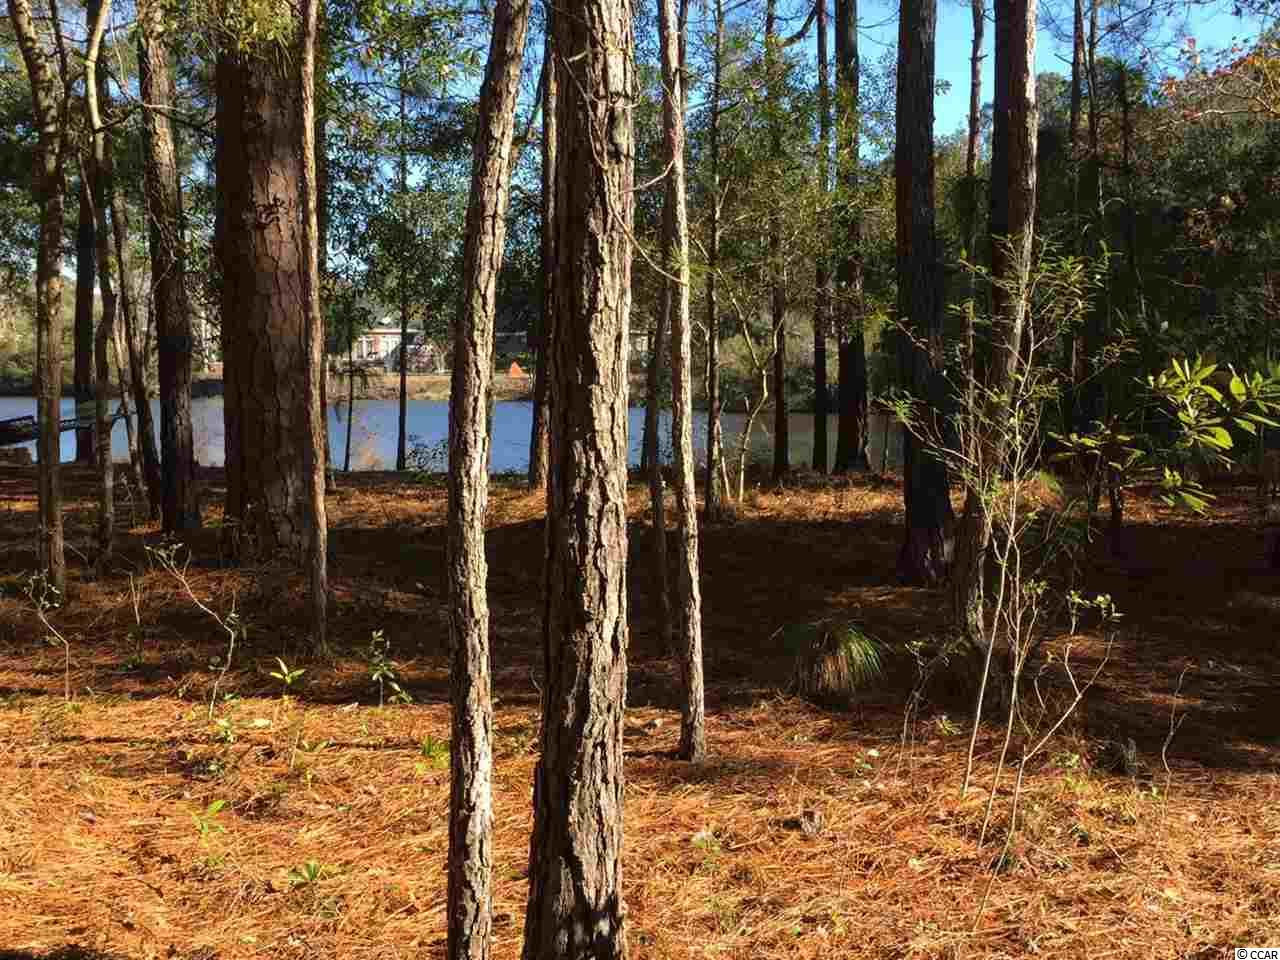 Welcome to this beautiful wooded cul-de-sac lot on the water. It lies within the prestigious and private Huntington Mews West area of The Reserve in Pawleys Island. With no time limit in which to build, this gated, golf and marina community offers a perfect setting for your future primary or second home. Community amenities include access to Litchfield By The Sea, private walking/biking trails, fishing and tennis. It also features an oceanfront clubhouse which includes access to the River Club Pool. Memberships are also available at the private Reserve Harbor Yacht Club with its waterway marina and also the Greg Norman designed golf course.